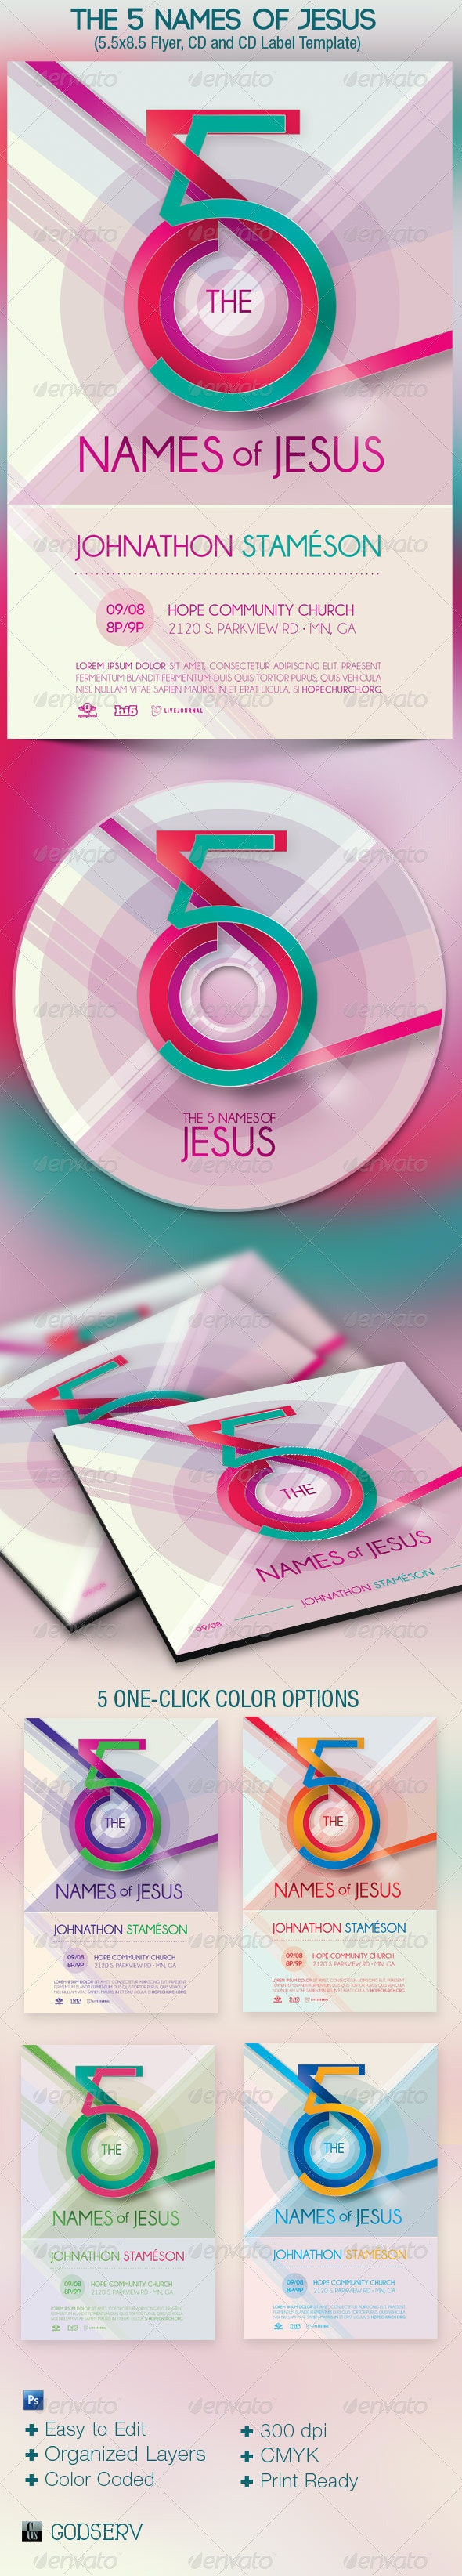 Jesus Names Church Flyer CD Template - Church Flyers